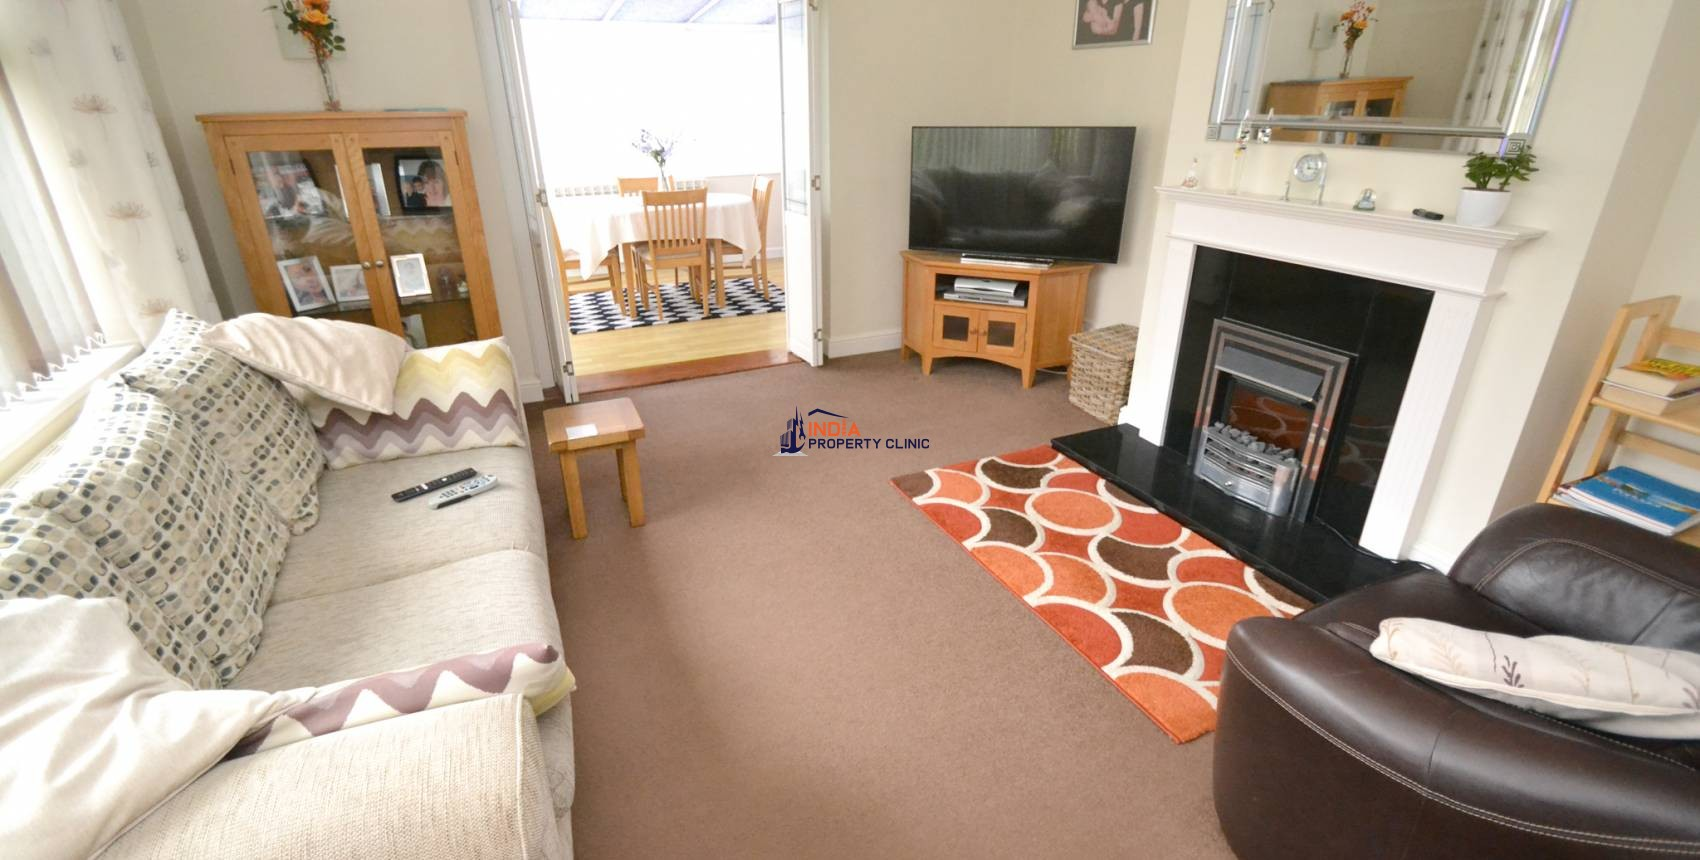 House For Sale in St Briocq